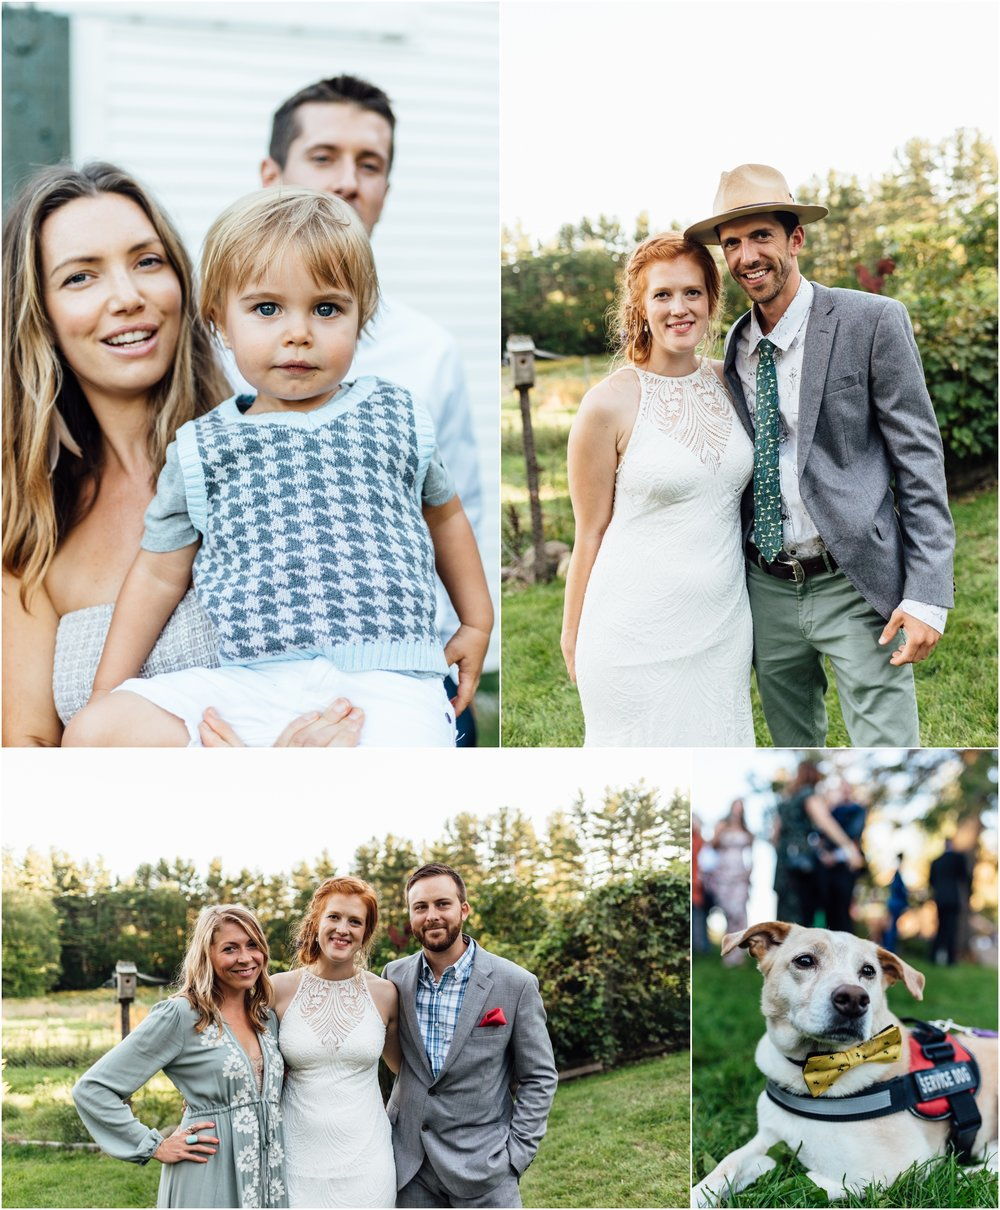 Kate_and_Michele_New_Hampshire_wedding_the_photo_farm_0628.jpg